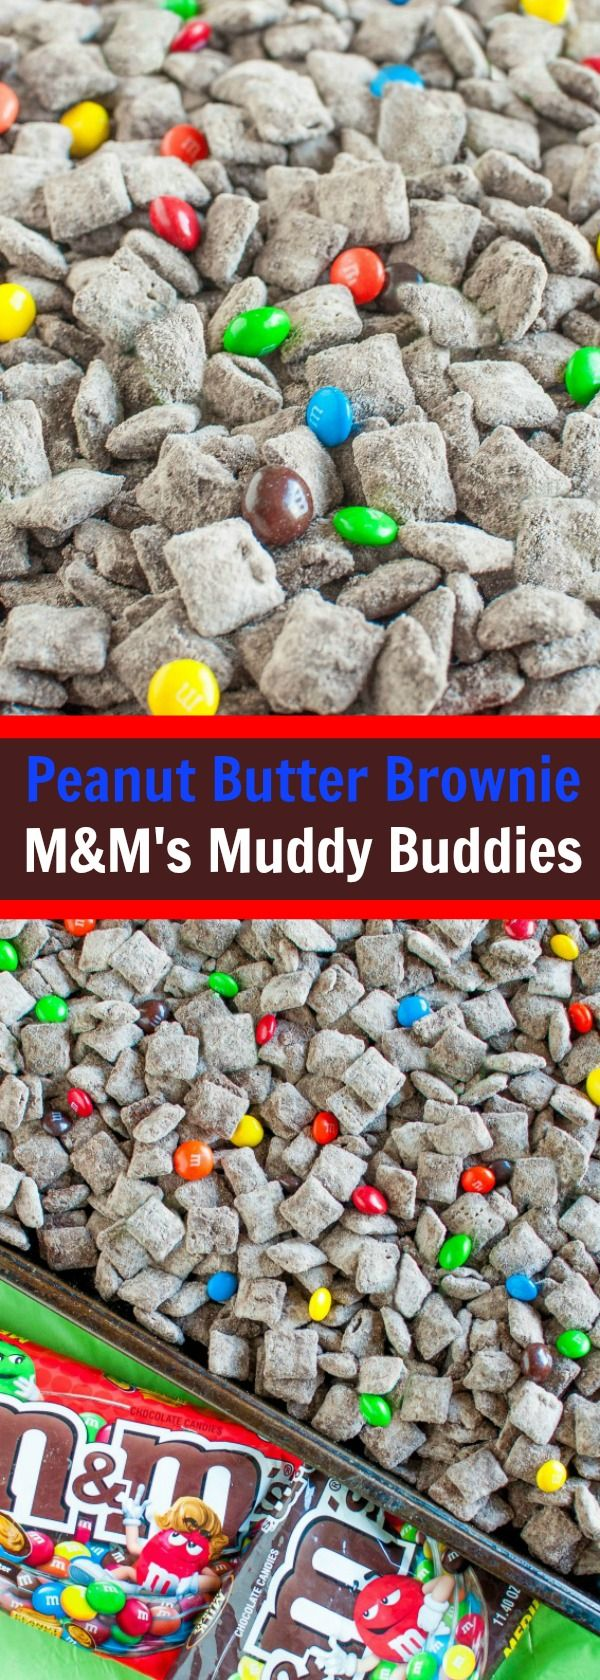 Peanut Butter BROWNIE M&M's Muddy Buddies!